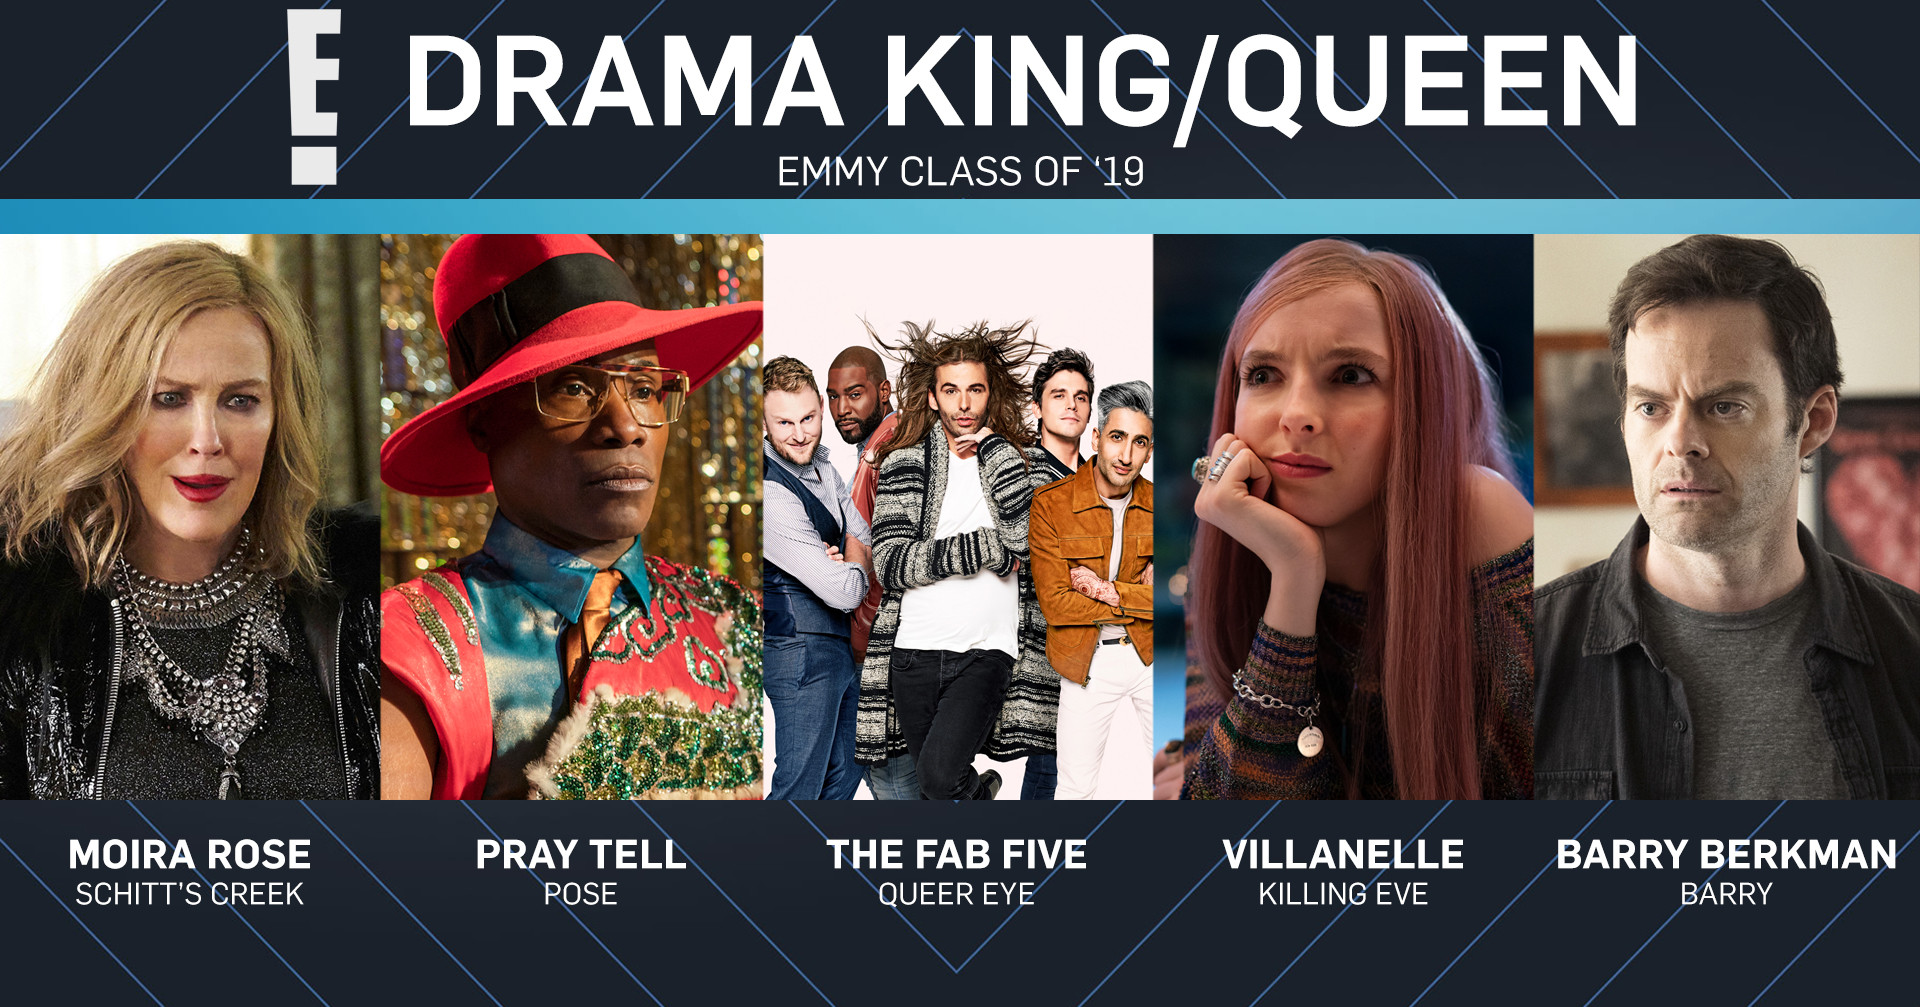 Emmy Class of 2019, Drama King and Queen